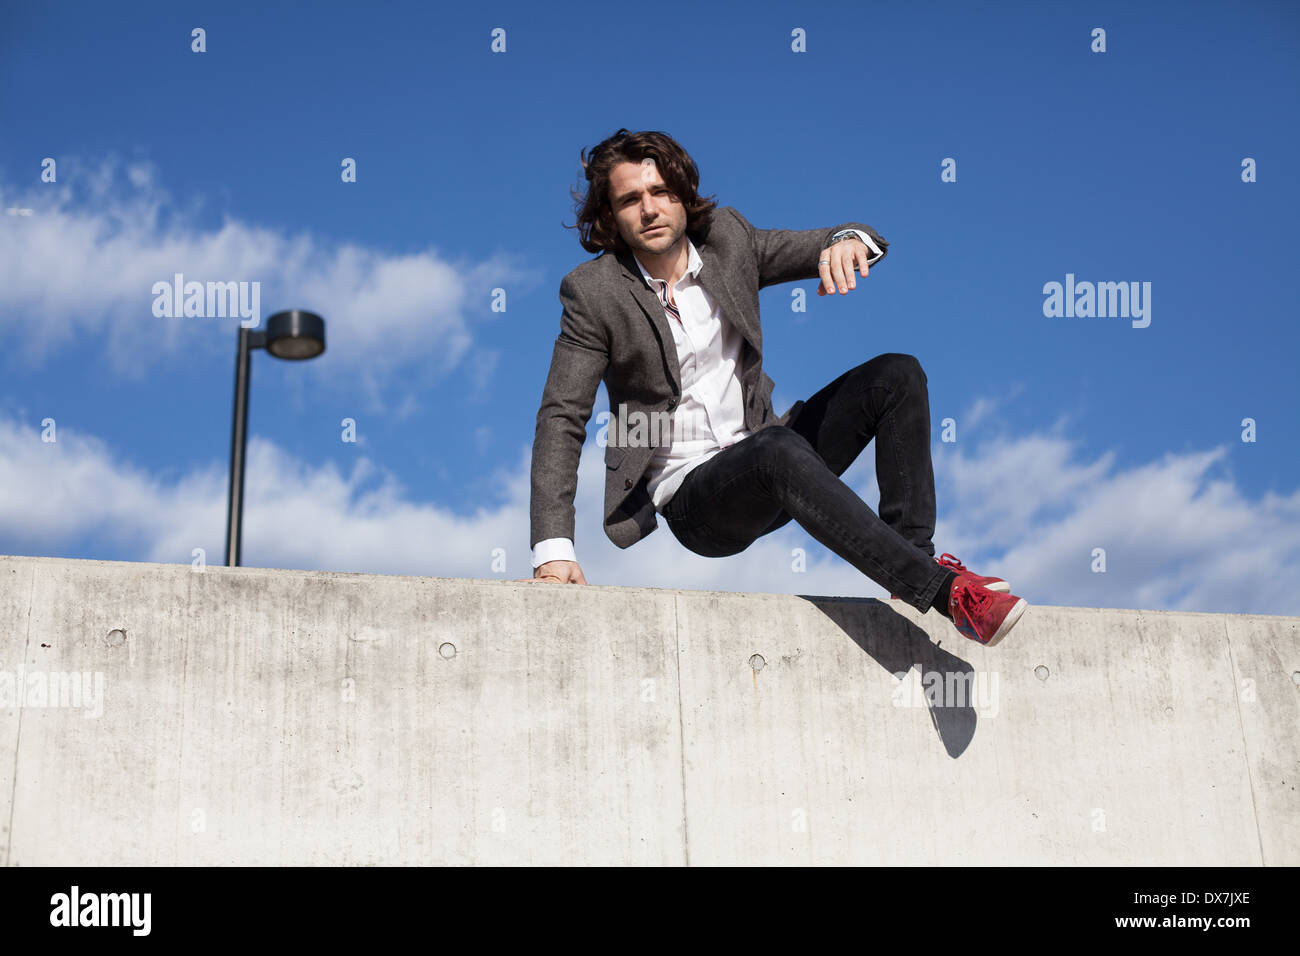 A young male model on a concrete wall with blue sky behind - Stock Image